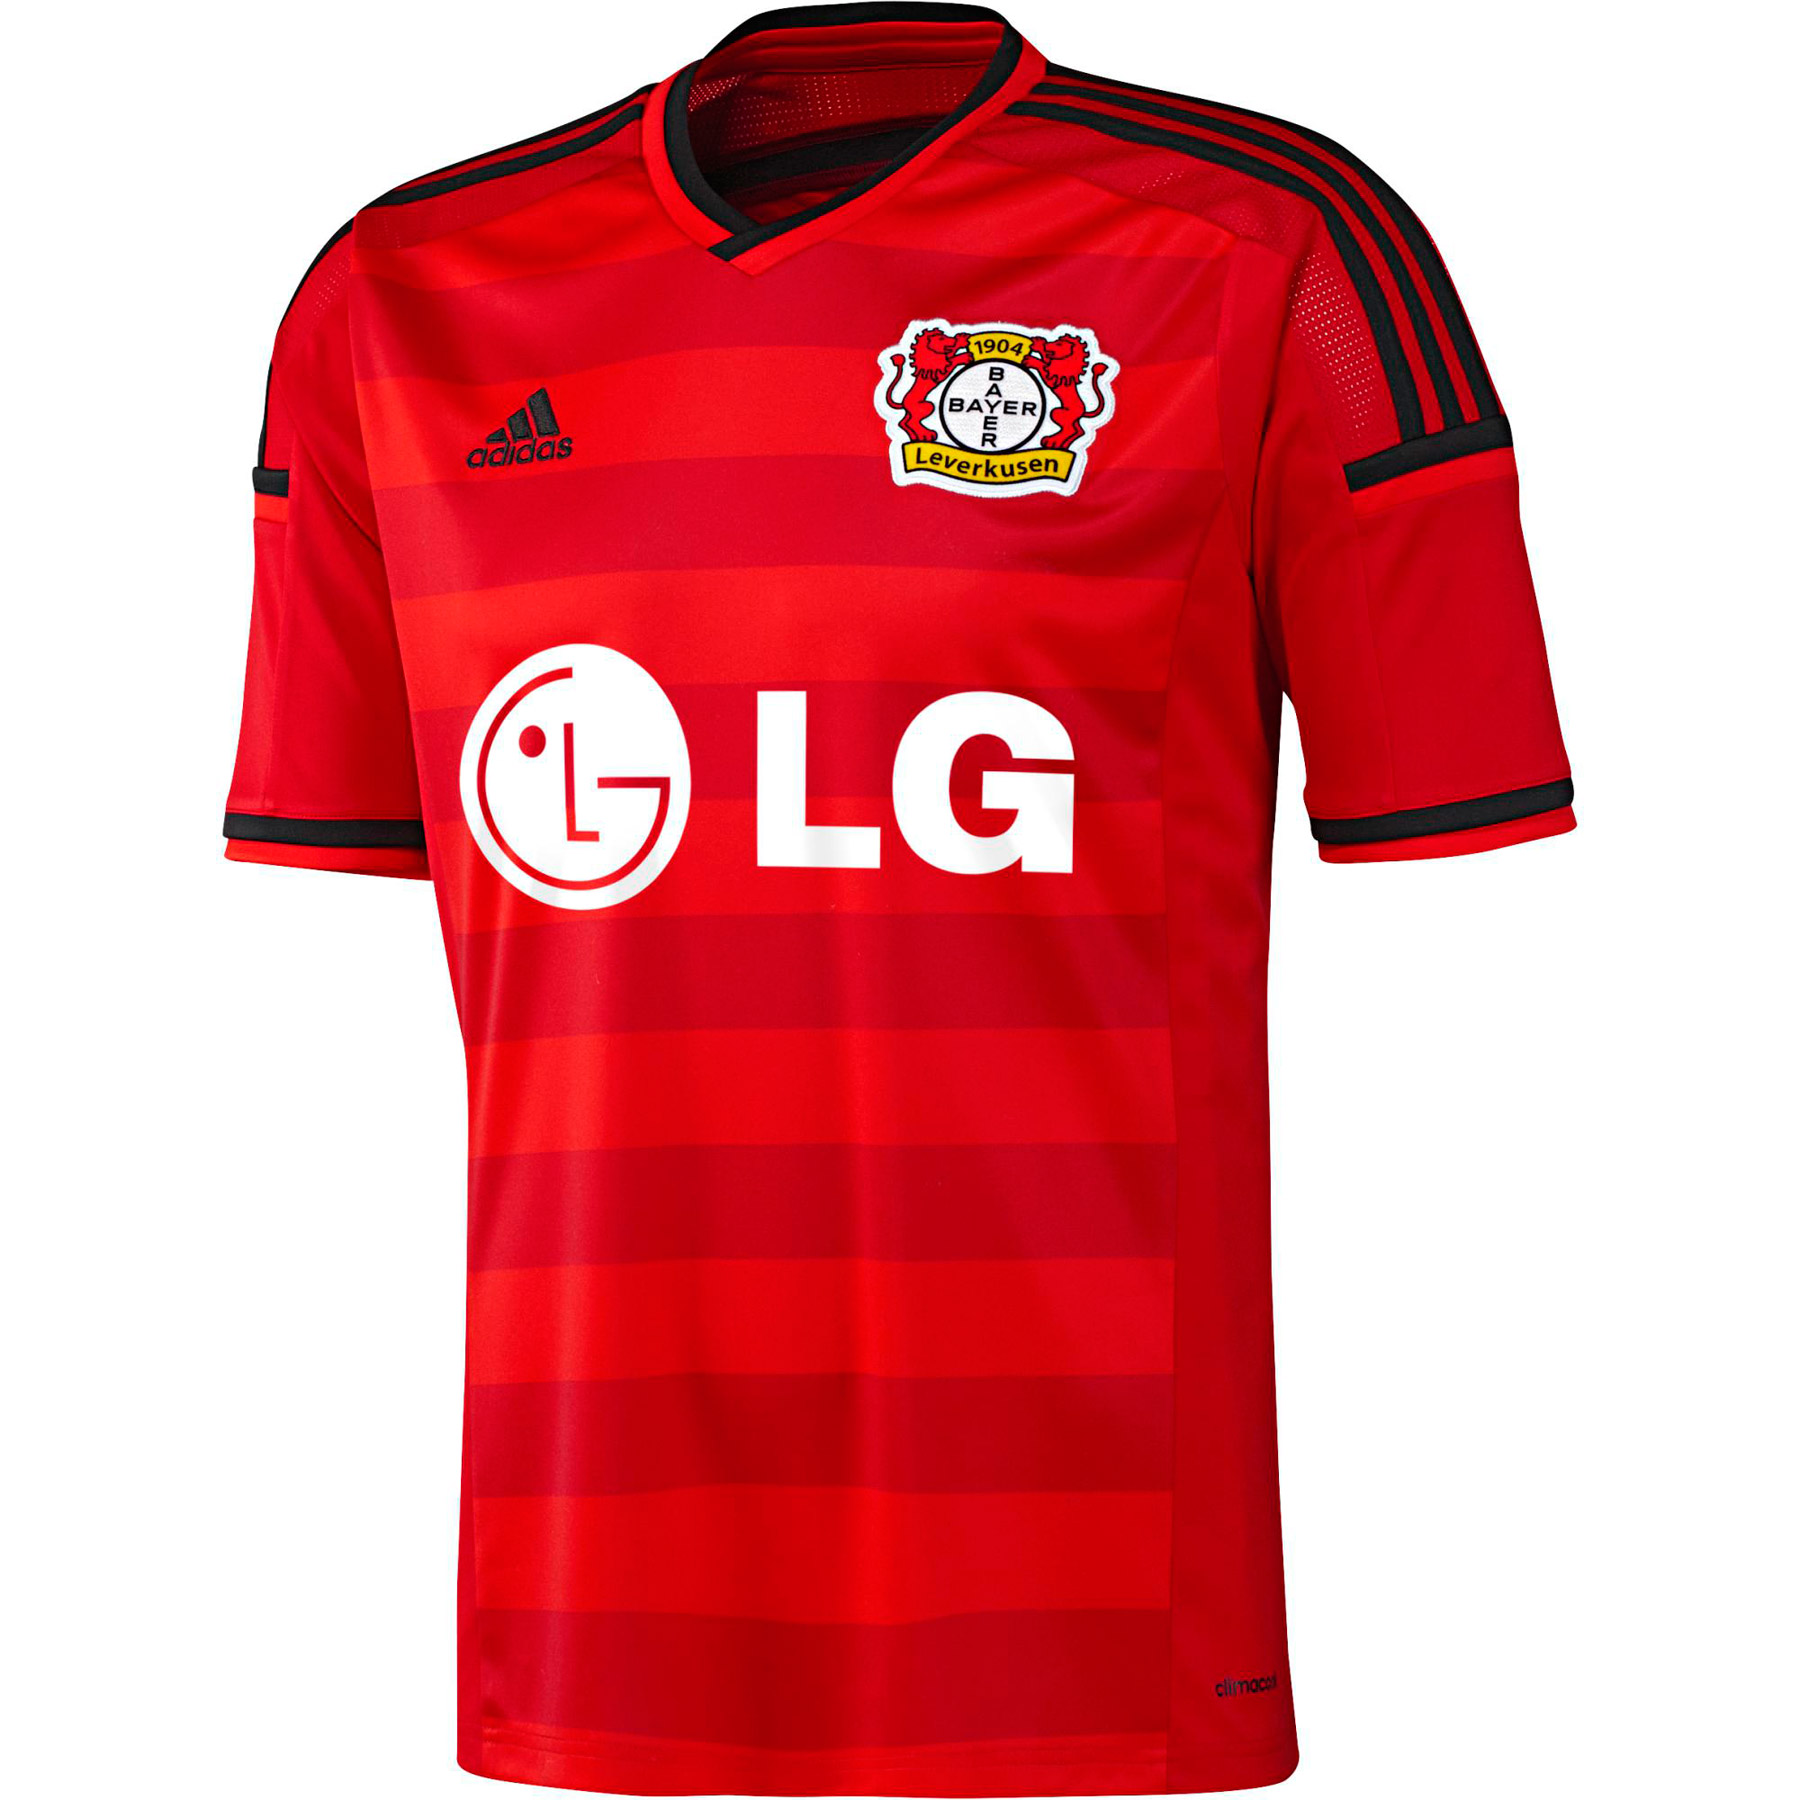 Bayer Leverkusen Away Shirt 201516 Red